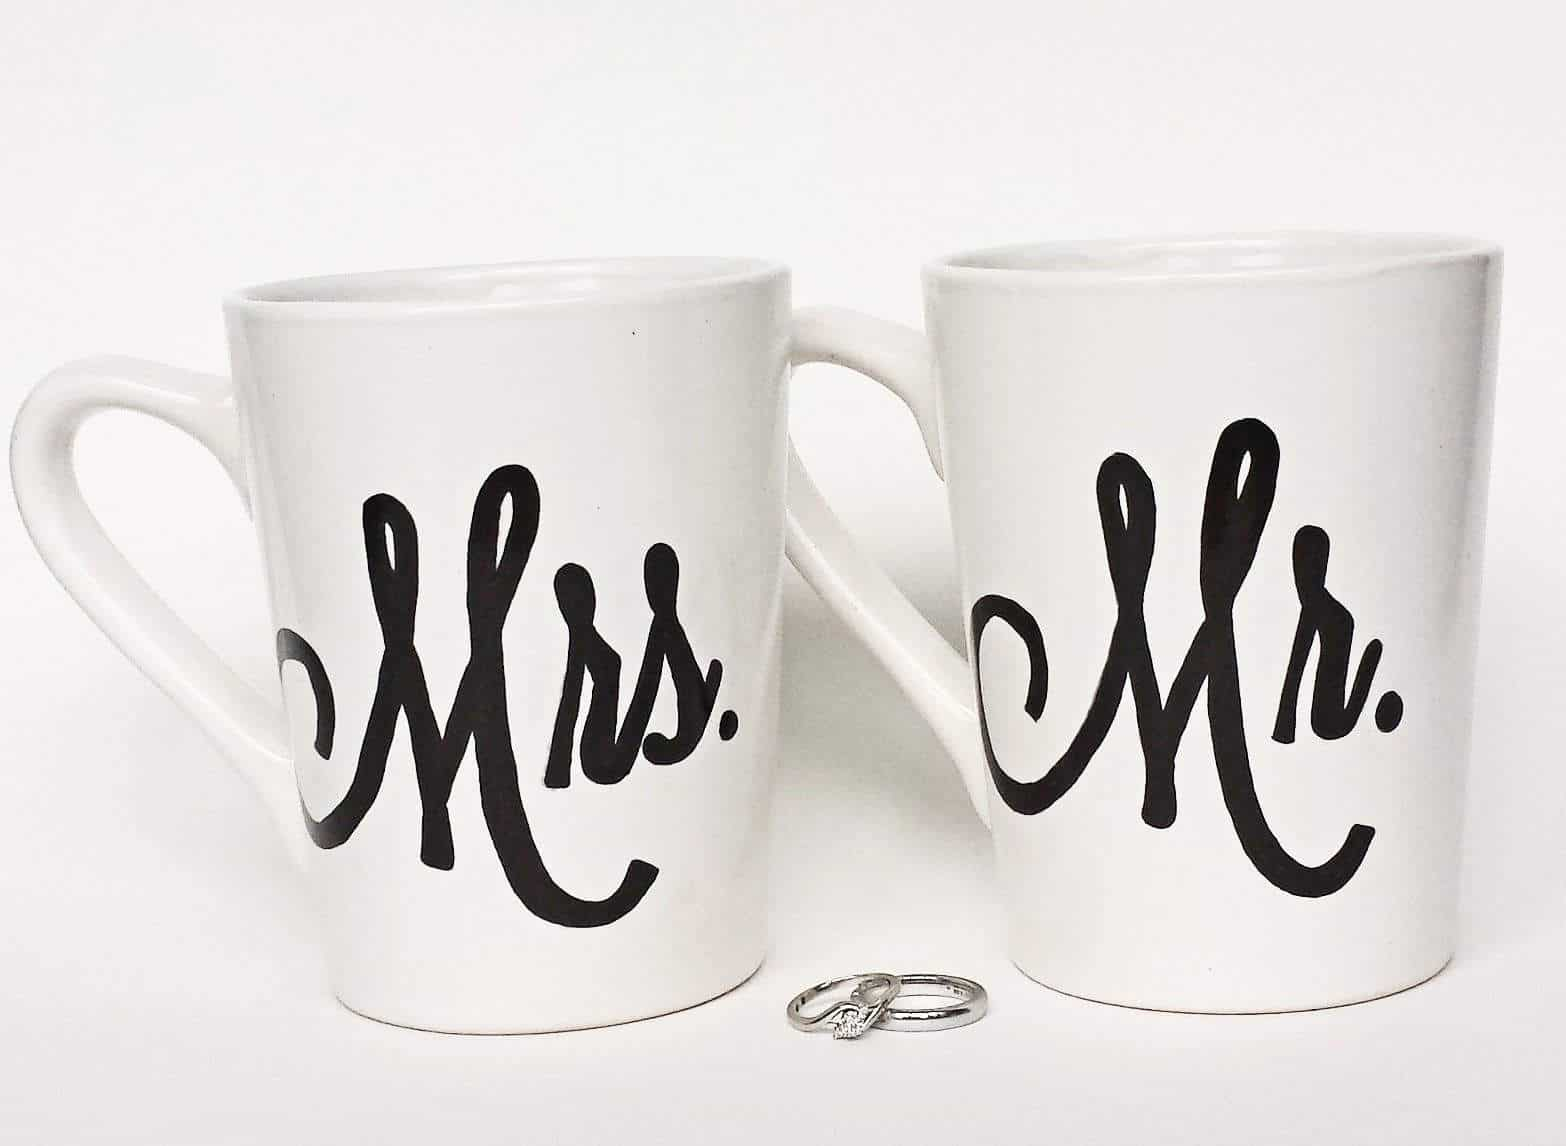 Mr and Mrs Mugs - Are you struggling to figure out what to get your favorite newlyweds? Don't stress! We've got the perfect thoughtful DIY wedding gifts that every couple will love.